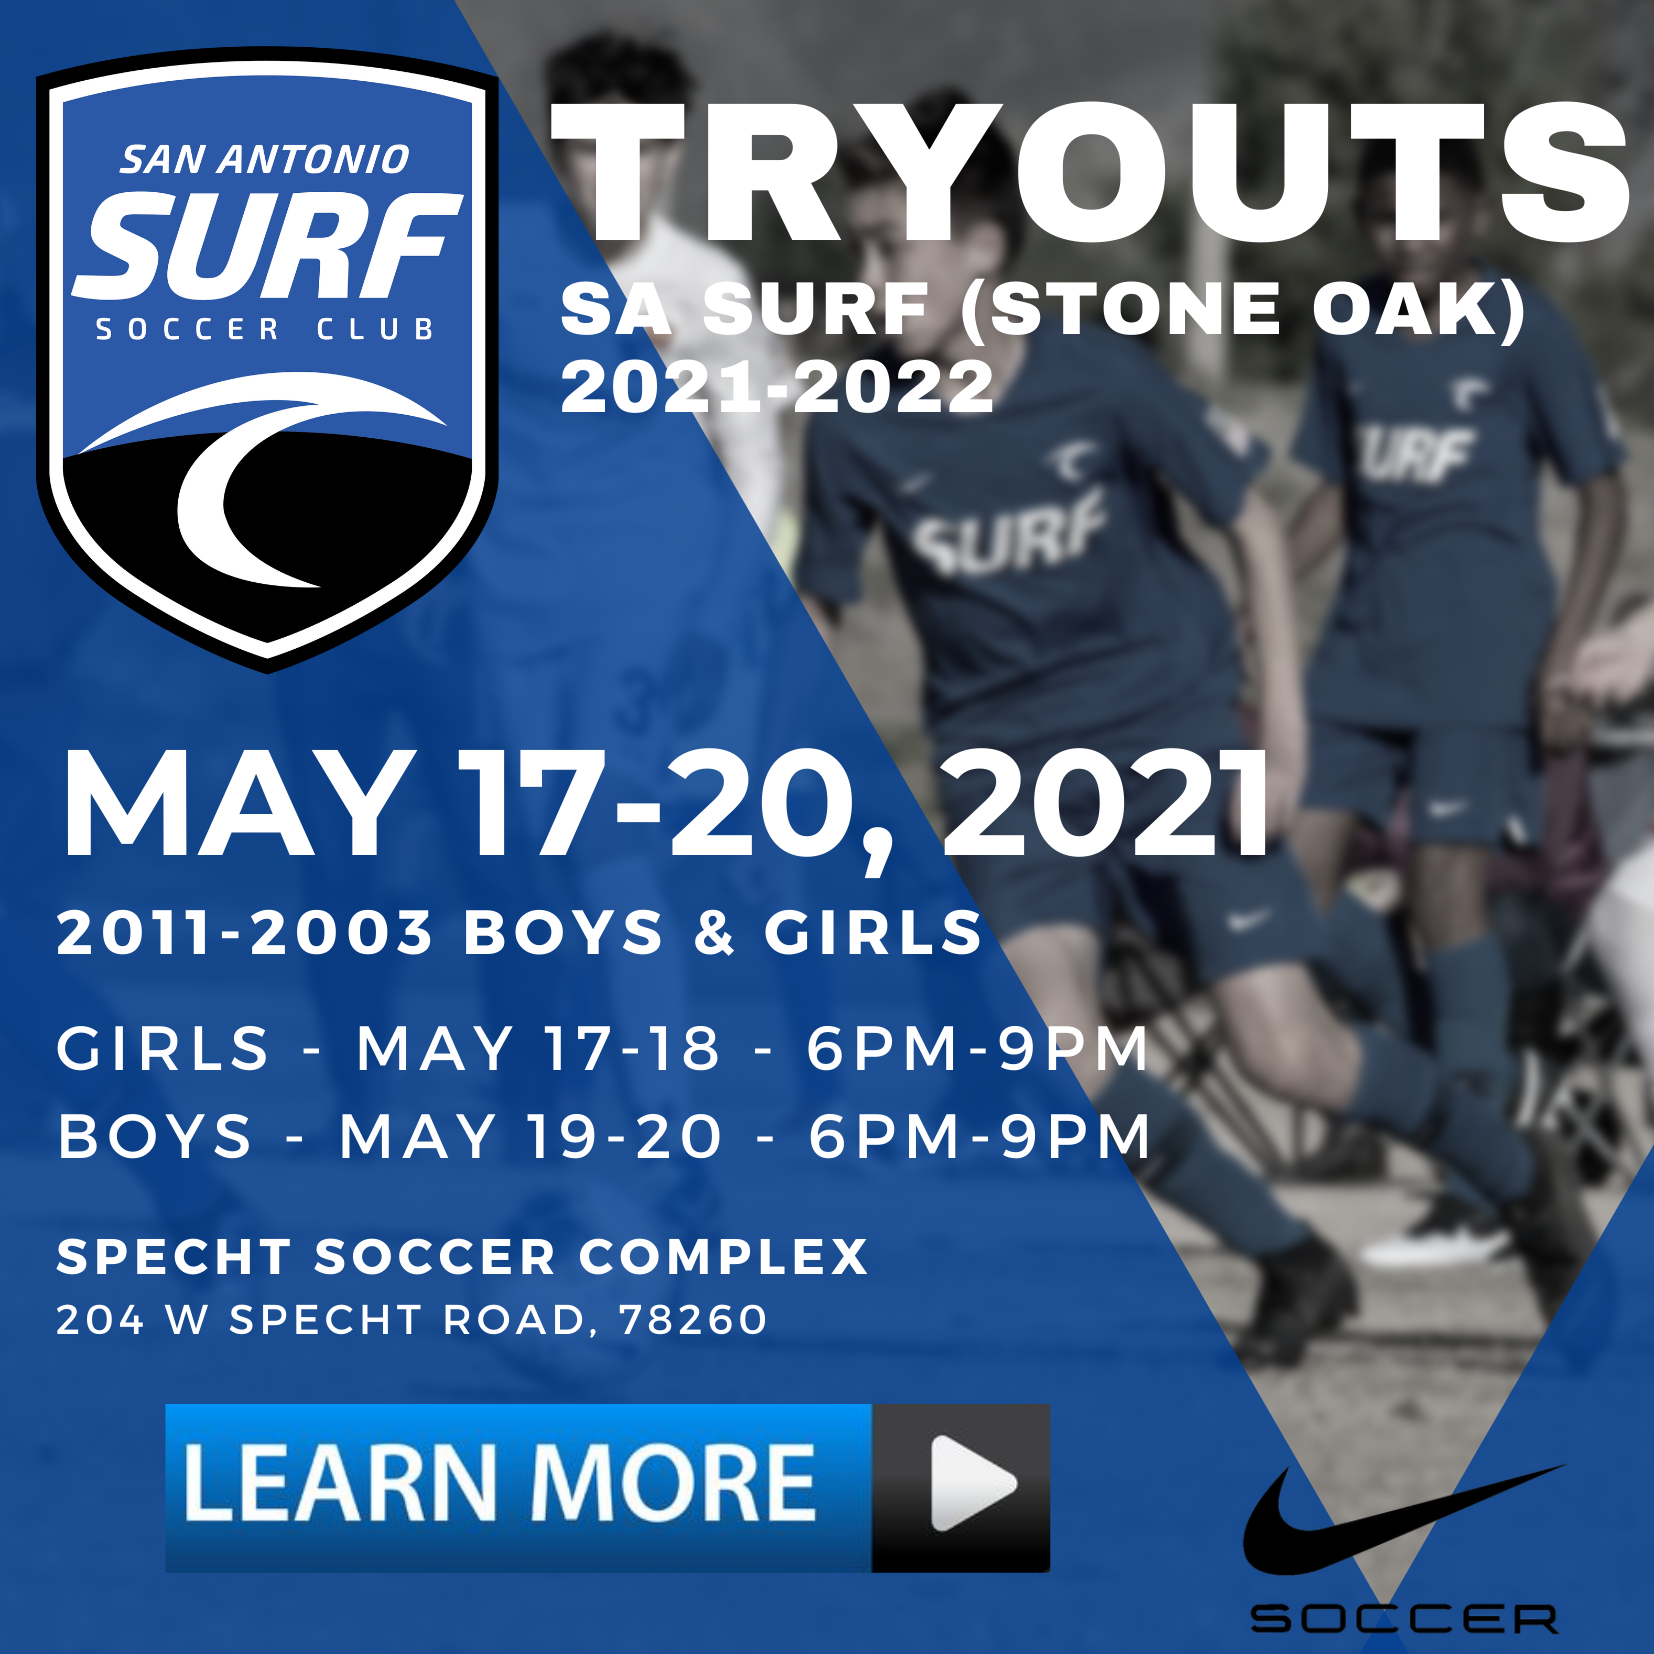 TRYOUT INFORMATION